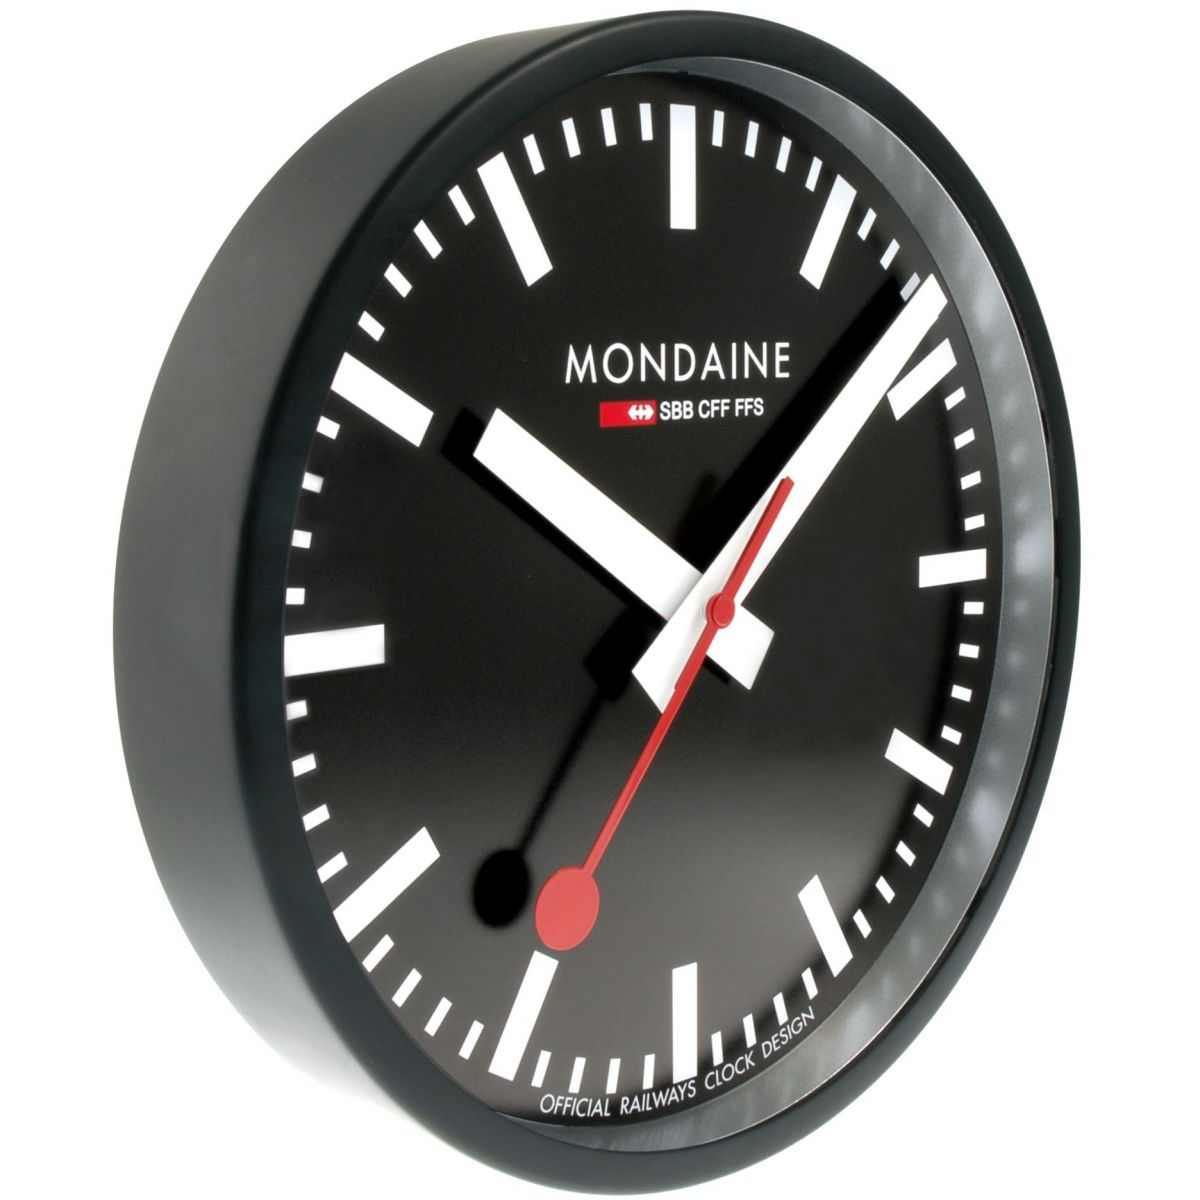 Clock Mondaine Swiss Railways Wall Clock Watch A990 Clock